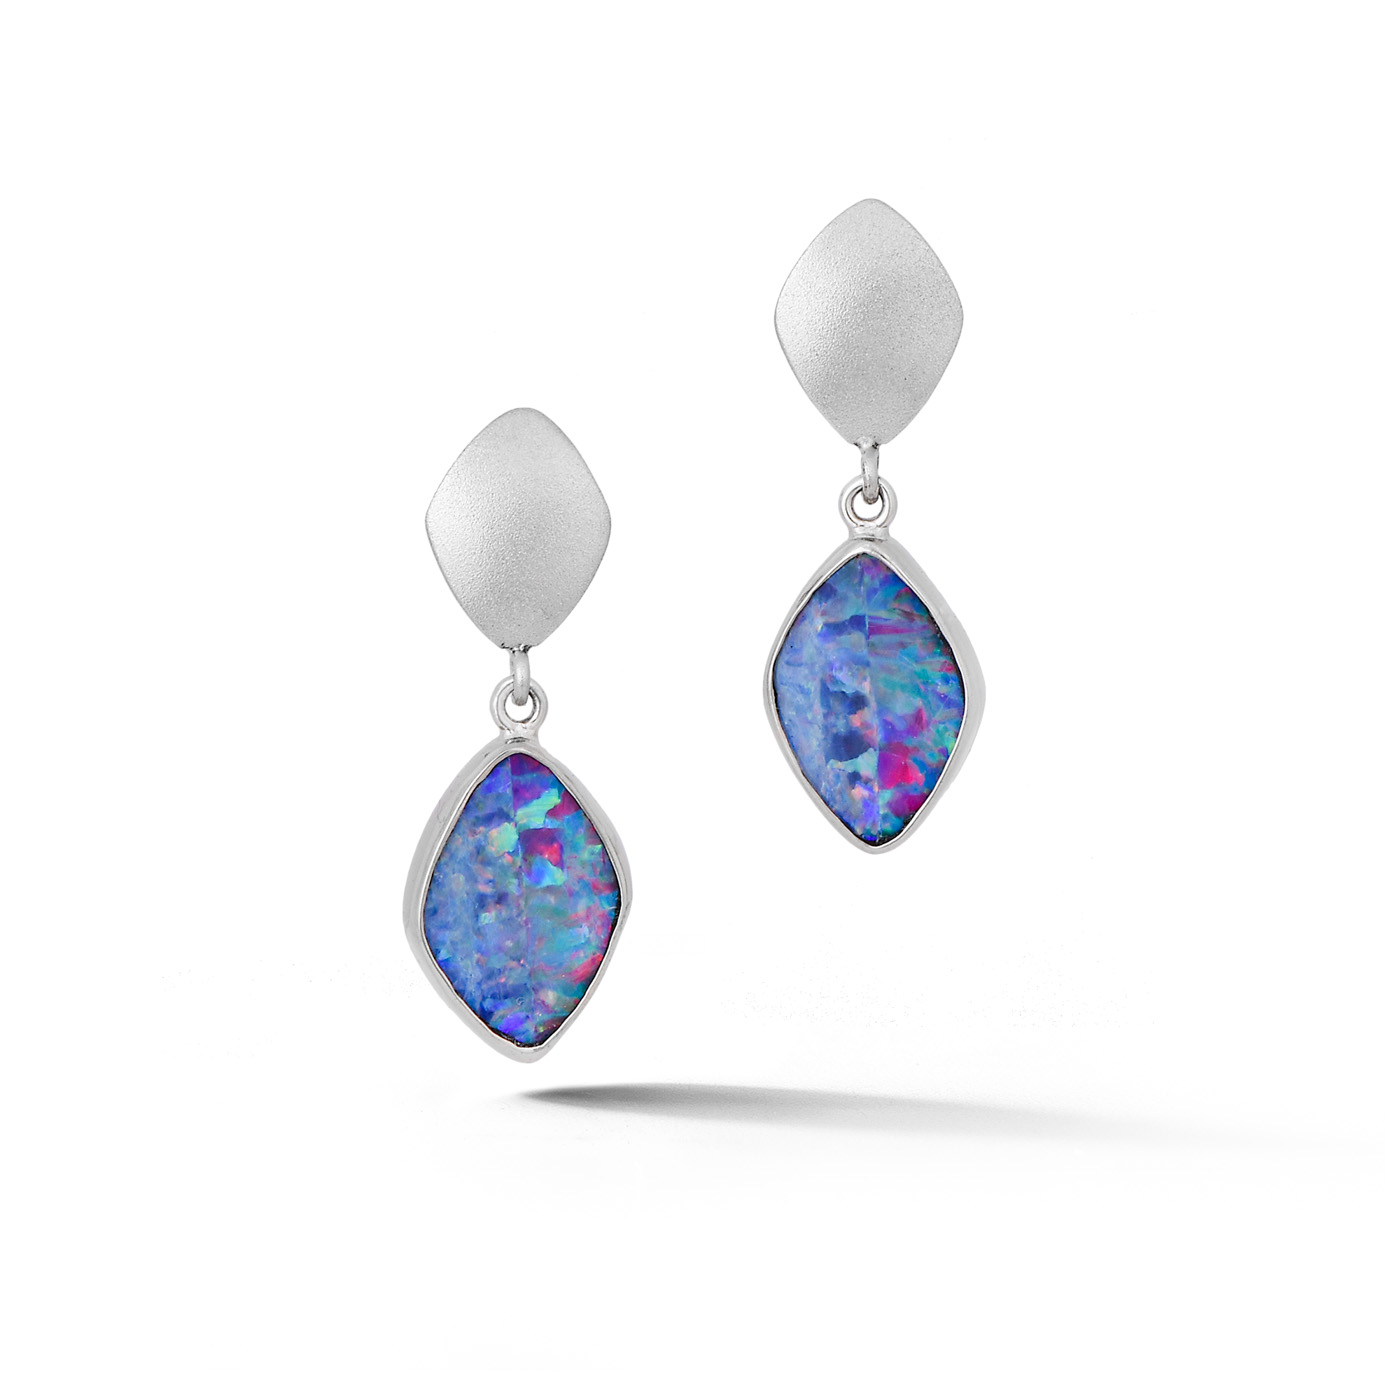 opal teardrop insp brooks jewelry boulder drops tear lola earrings shop august